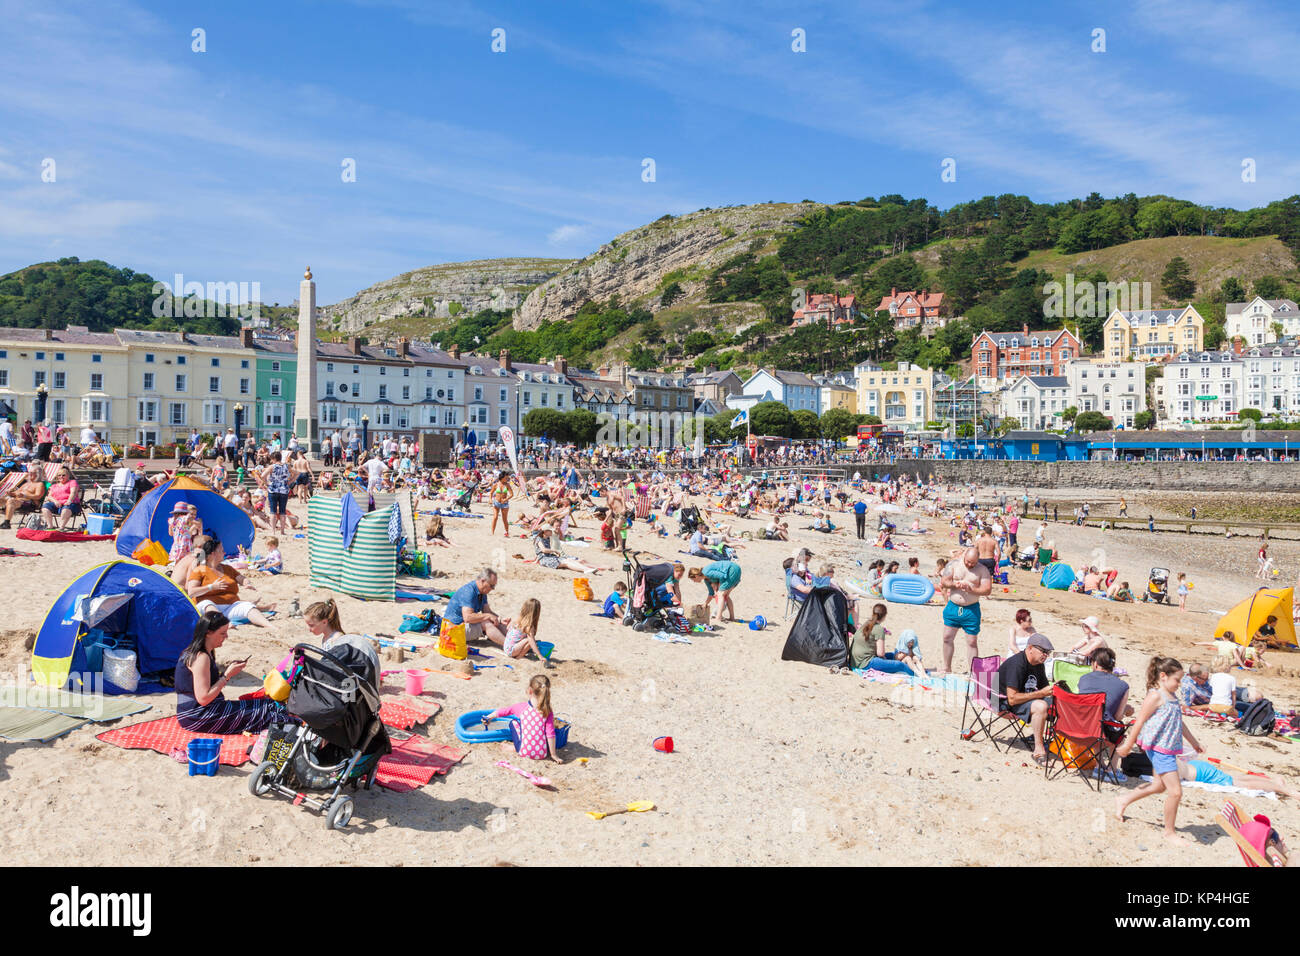 north wales llandudno north wales Llandudno beach holidaymakers adults and children playing on the beach Llandudno Stock Photo